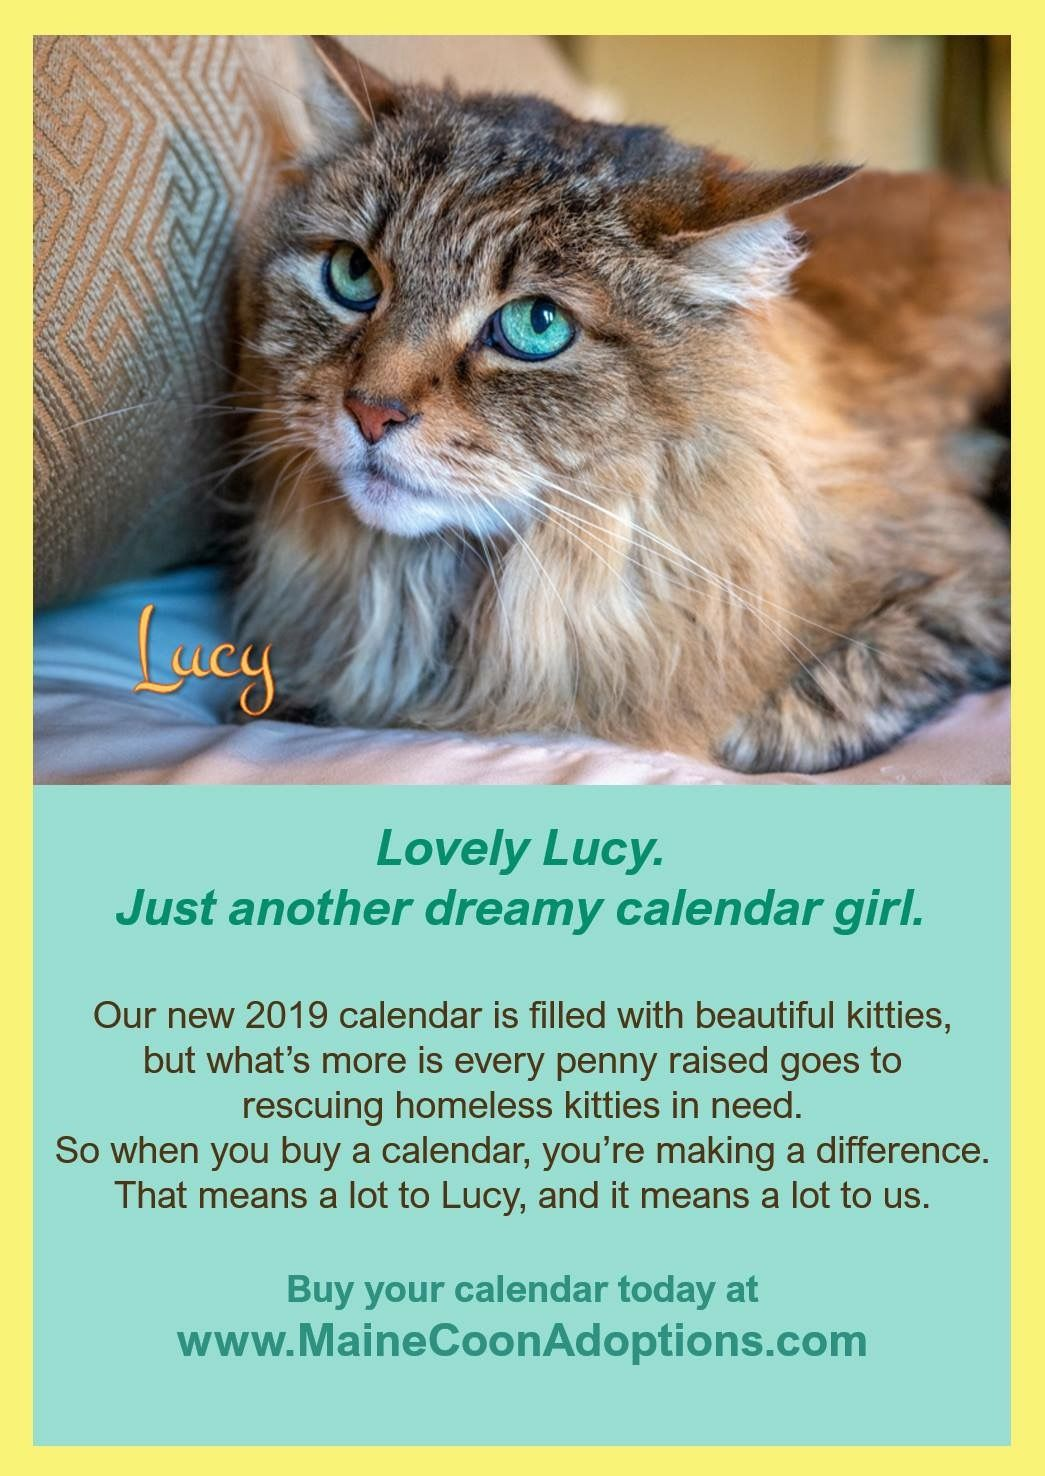 Pin by MaineCoonAdoptions Oakland CA on Cat Rescue 2019